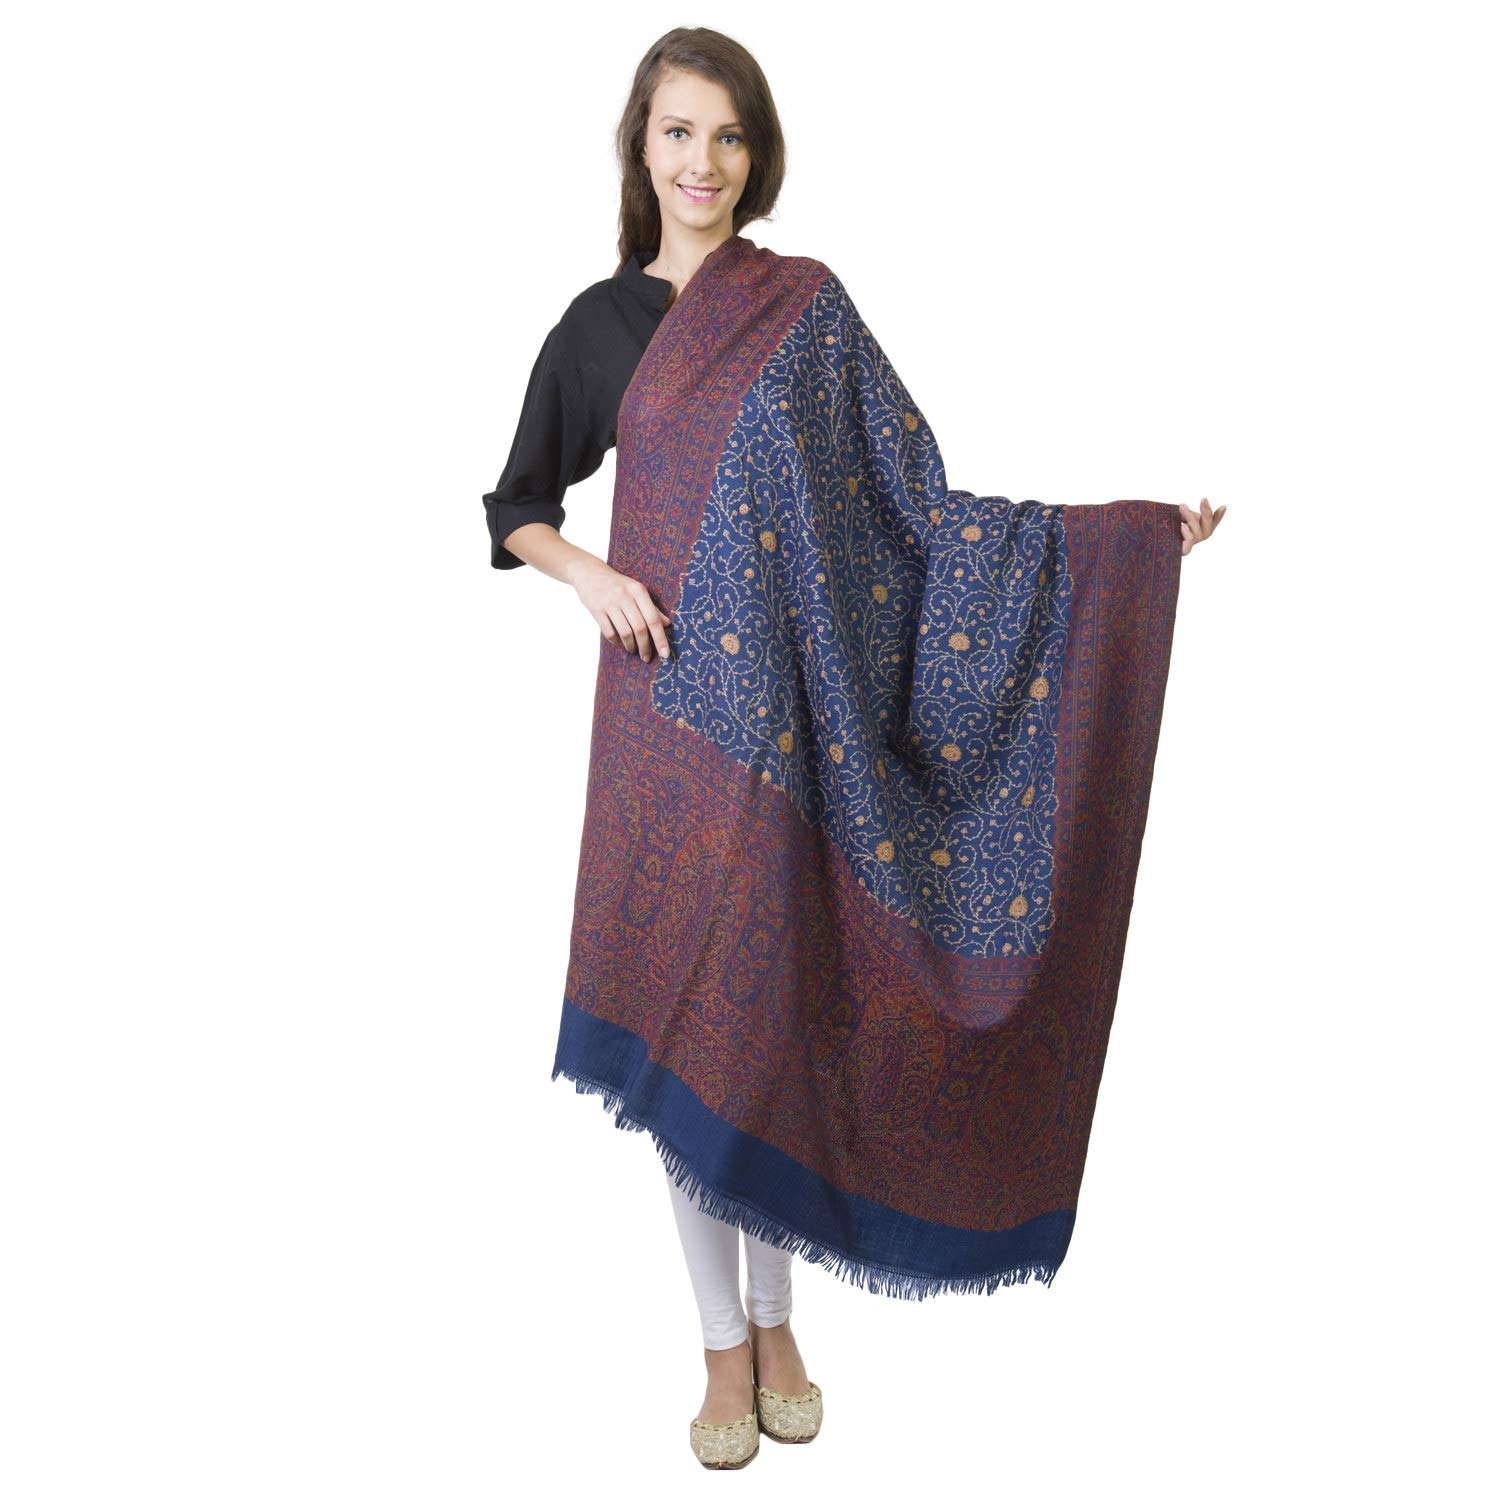 774f7c763 La Vastraa's Pure Wool Hand Embroidery Women's Shawls and Wraps - shawls  and wraps for evening dresses - Blue Shawls at Amazon Women's Clothing  store: